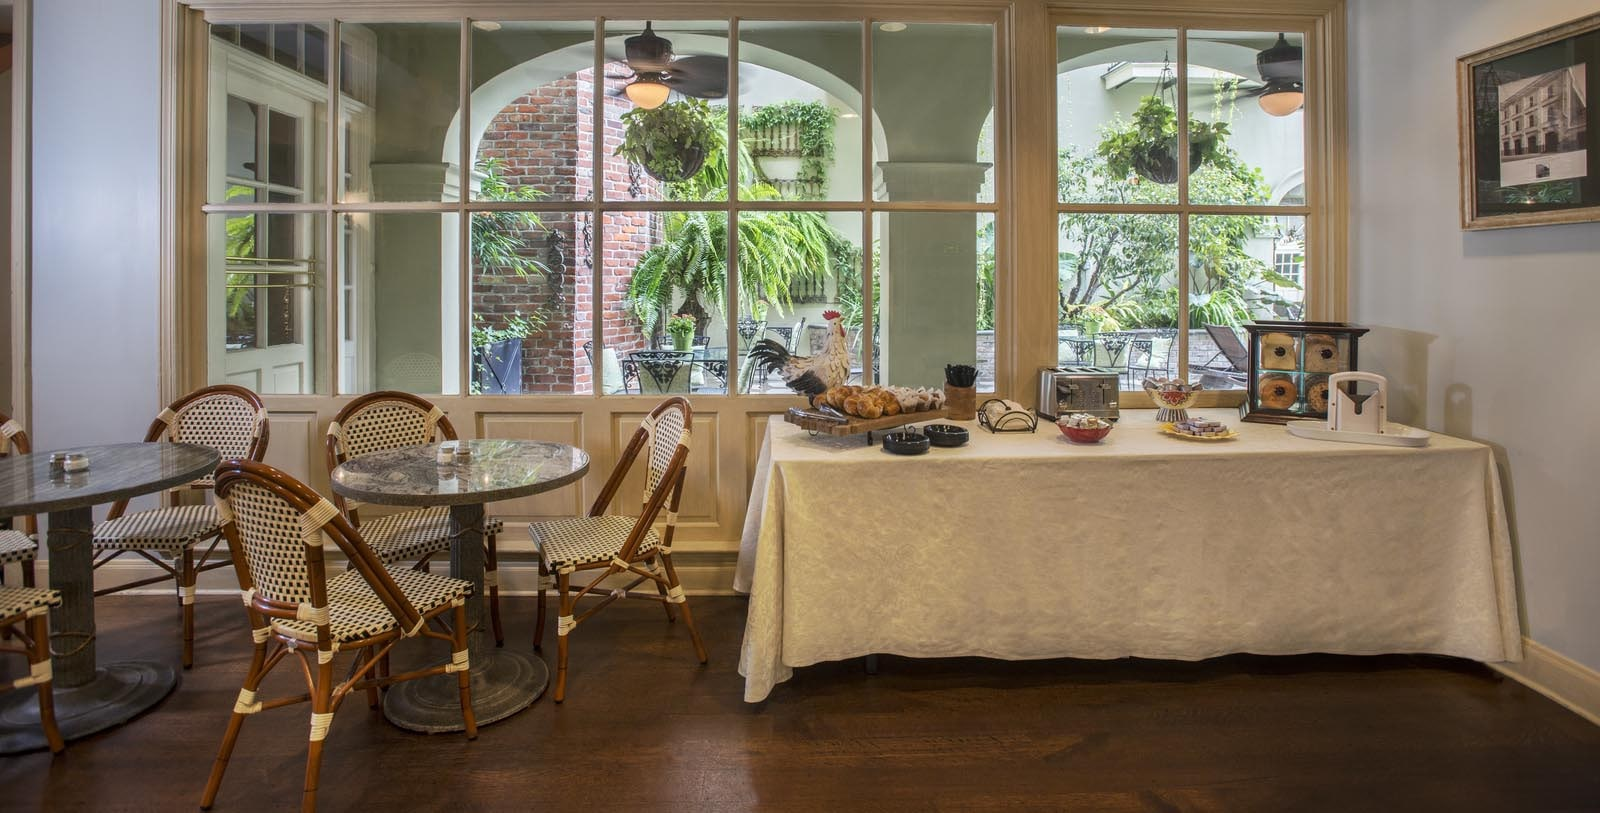 Image of breakfast served at Latitude 29 Restaurant at Bienville House, 1835, Member of Historic Hotels of America, in New Orleans, Louisiana, Taste